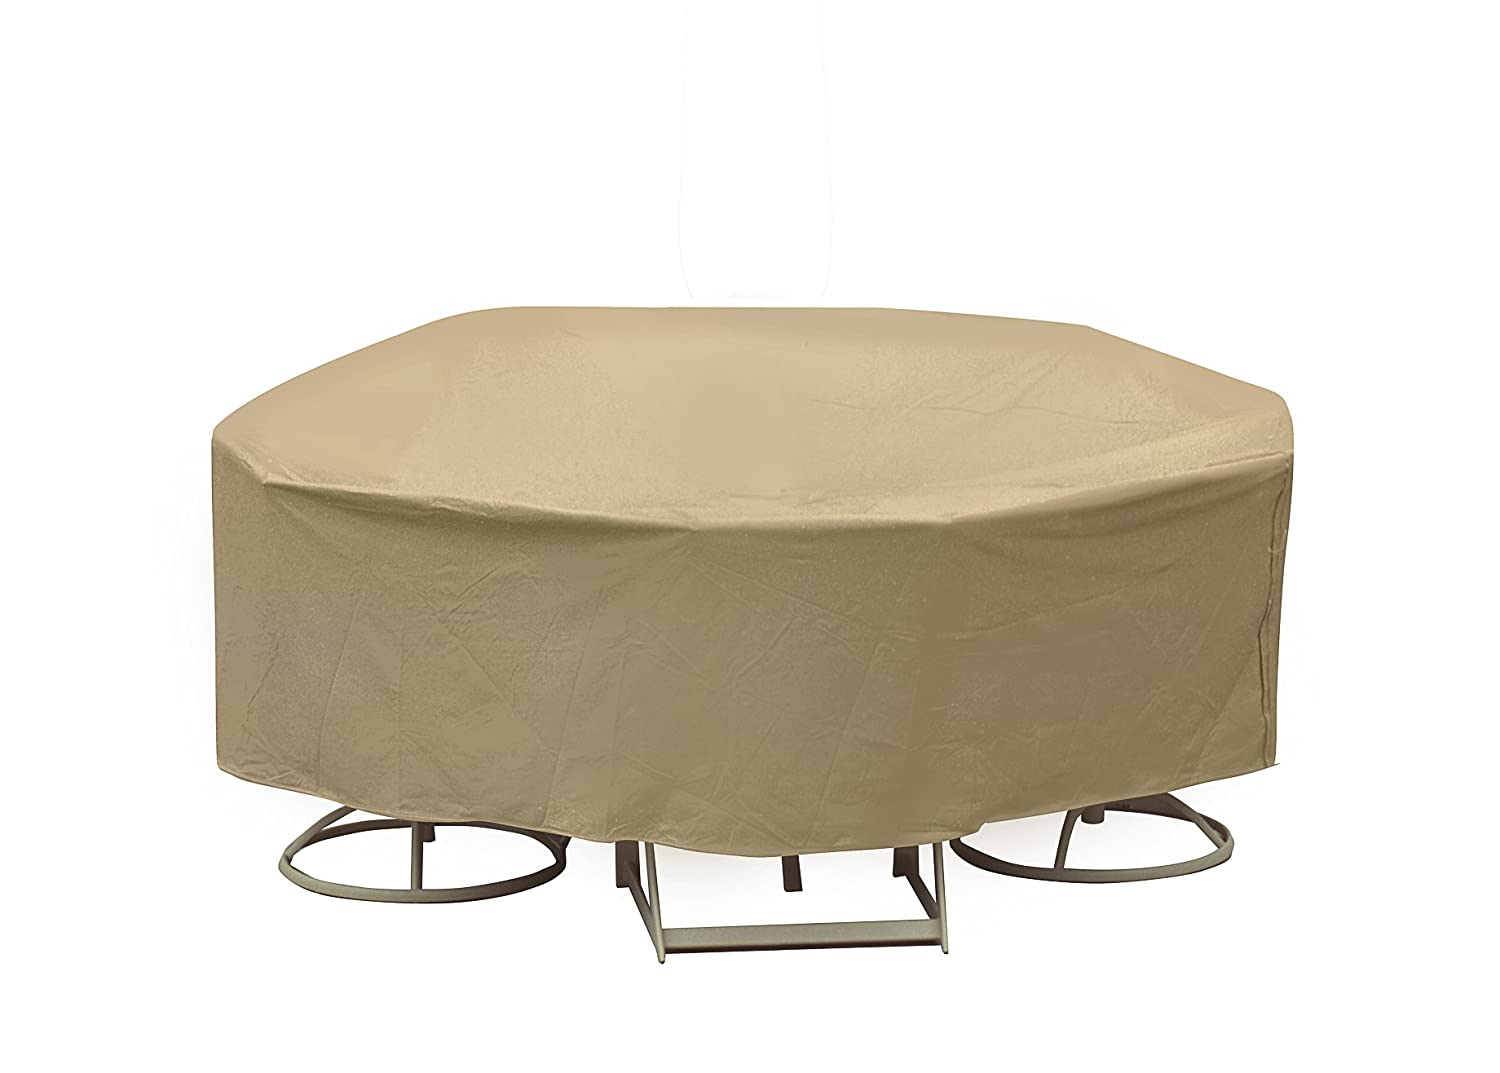 amazon round chair covers navana revolving price in bangladesh weatherproof 60 quot patio table cover outdoor set